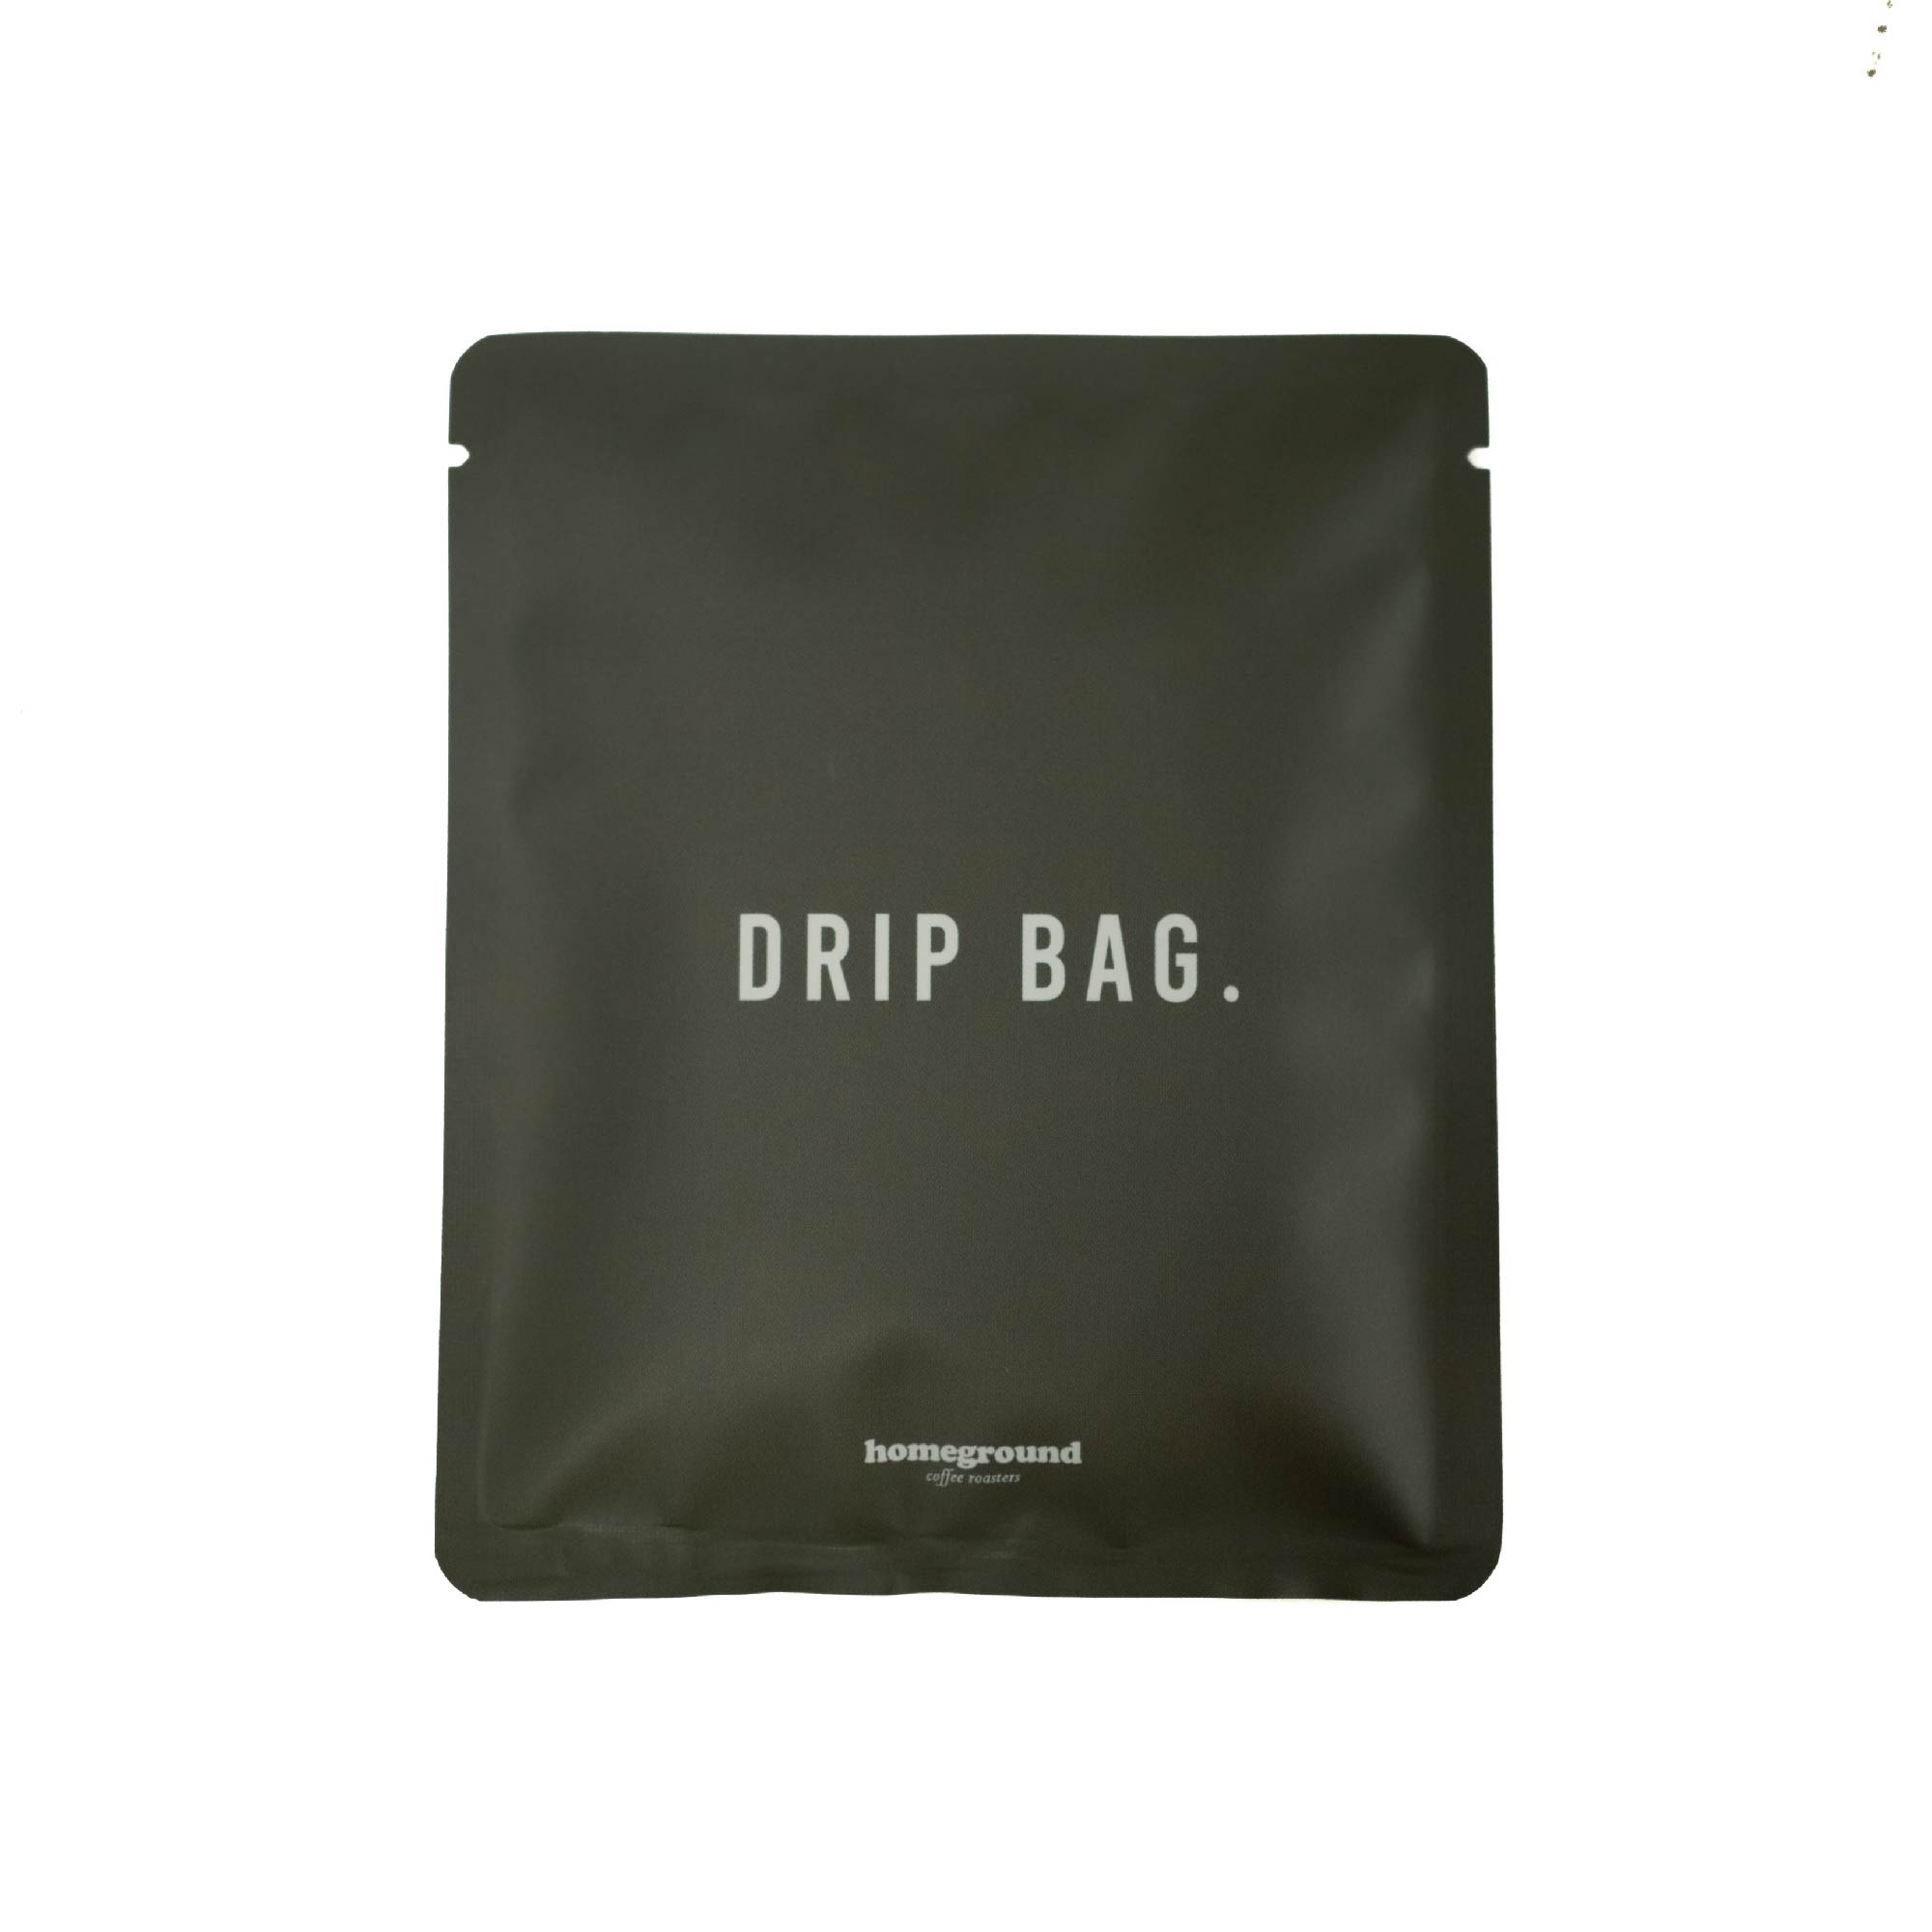 Homeground Drip Bags